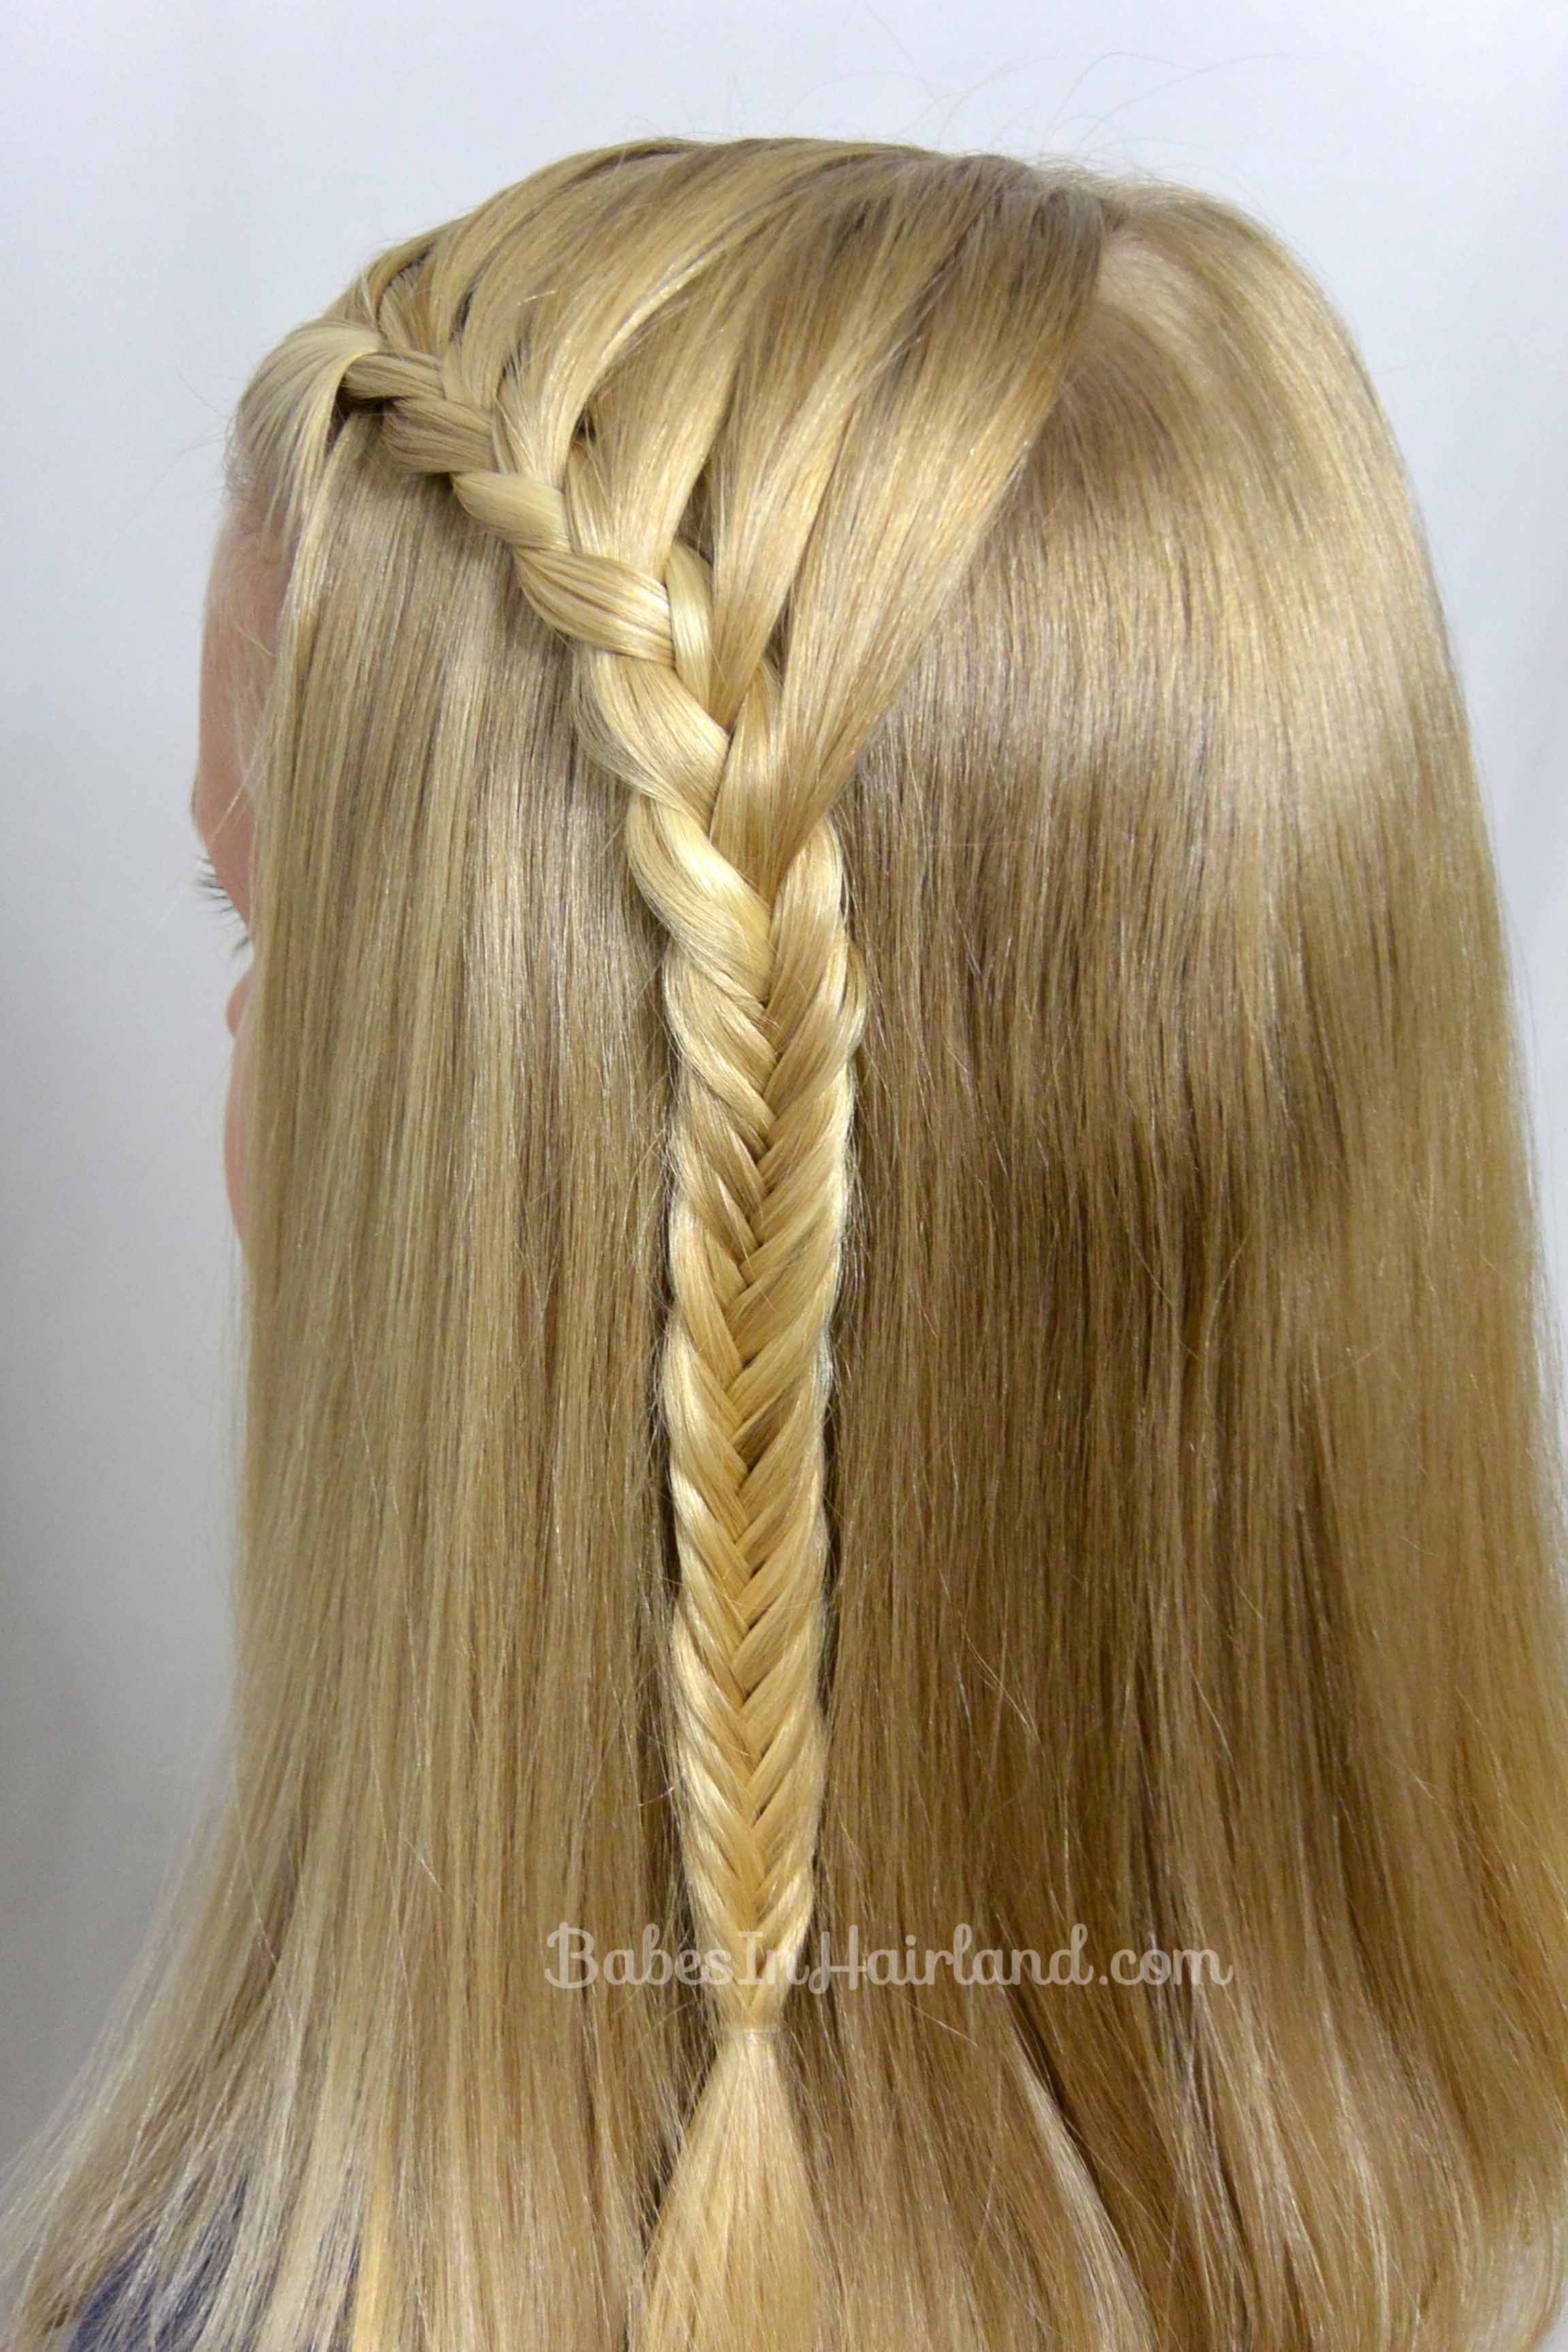 Tremendous Lace Braid Into A Fishbone Braid Babes In Hairland Hairstyles For Men Maxibearus